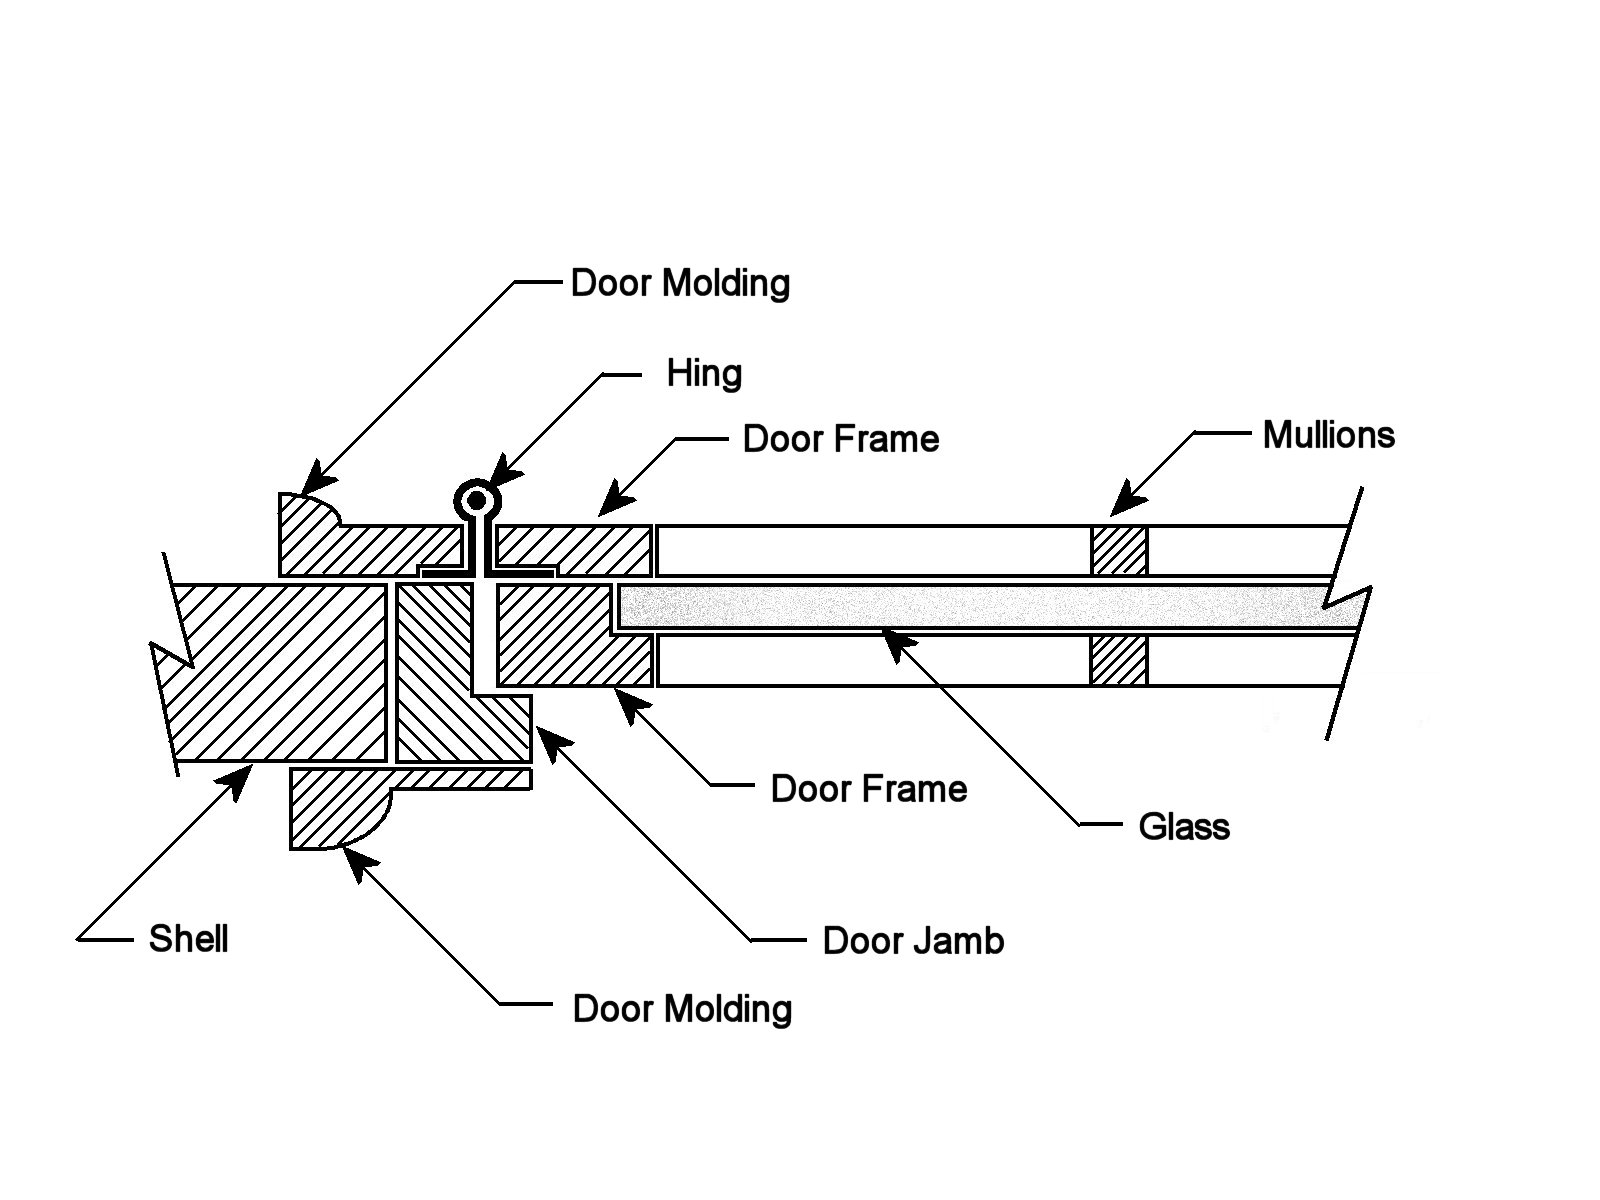 exterior door framing diagram   29 wiring diagram images